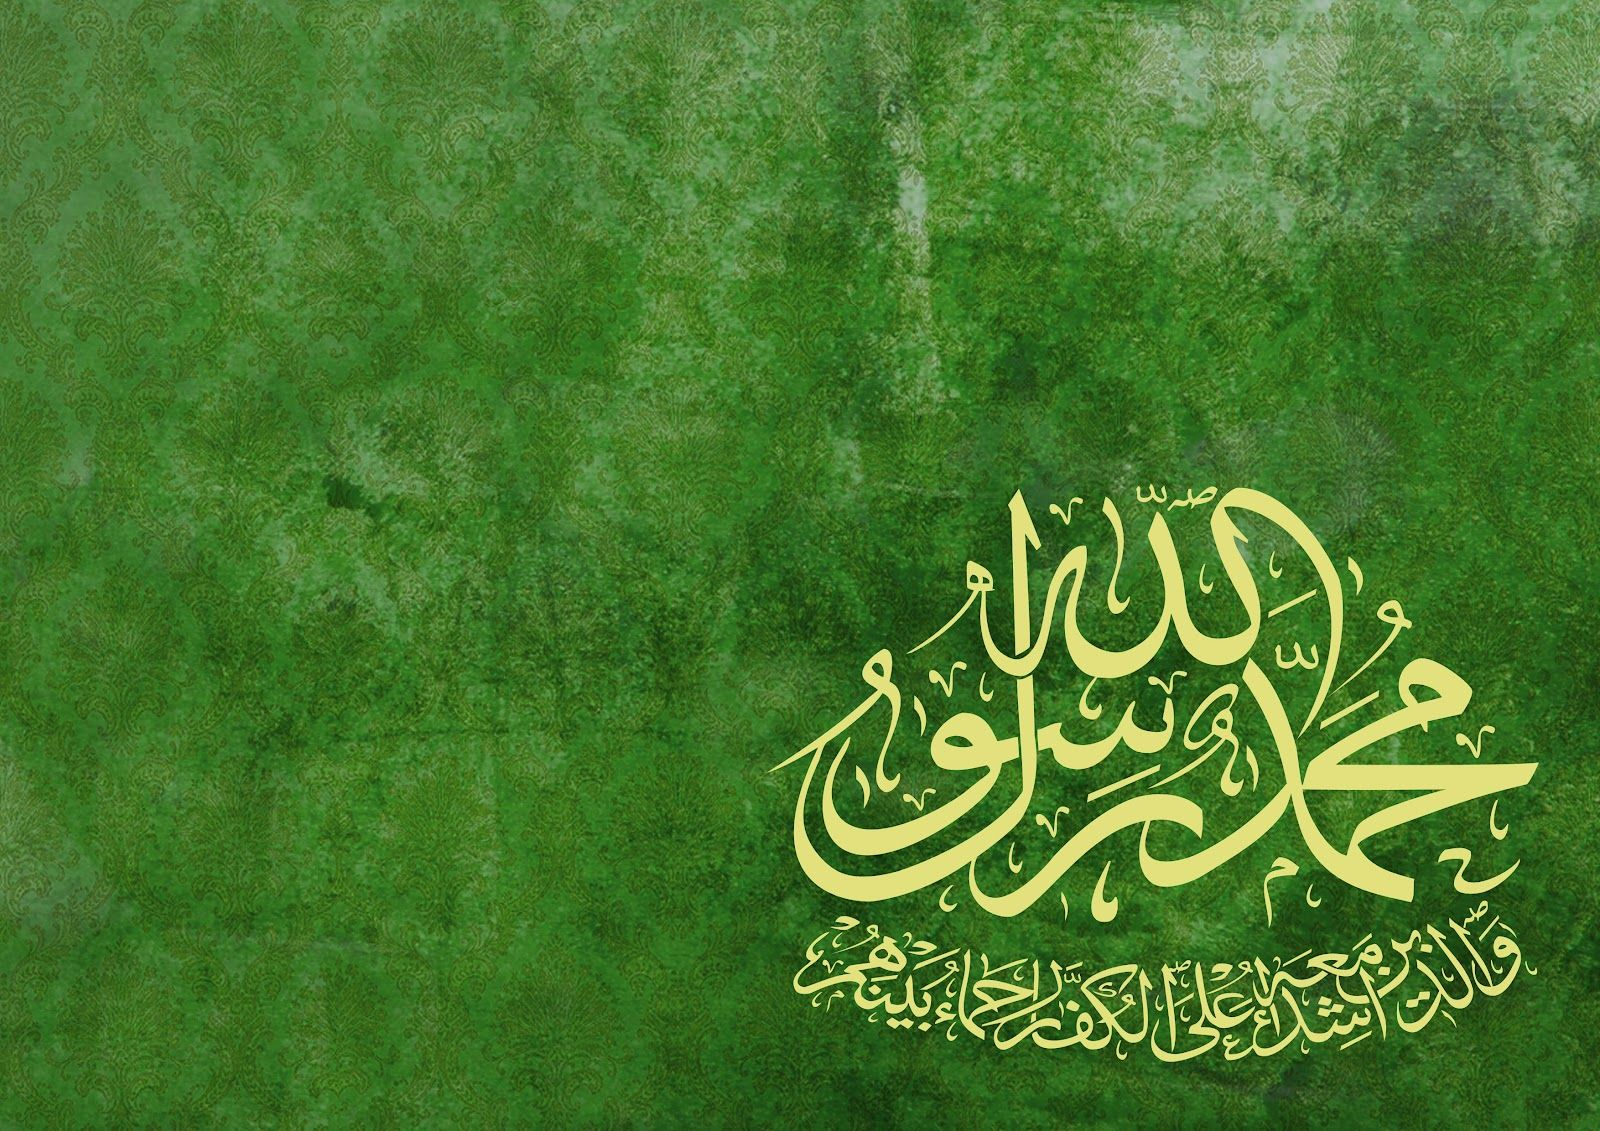 Islamic Calligraphy HD Image Wallpaper 2319 High